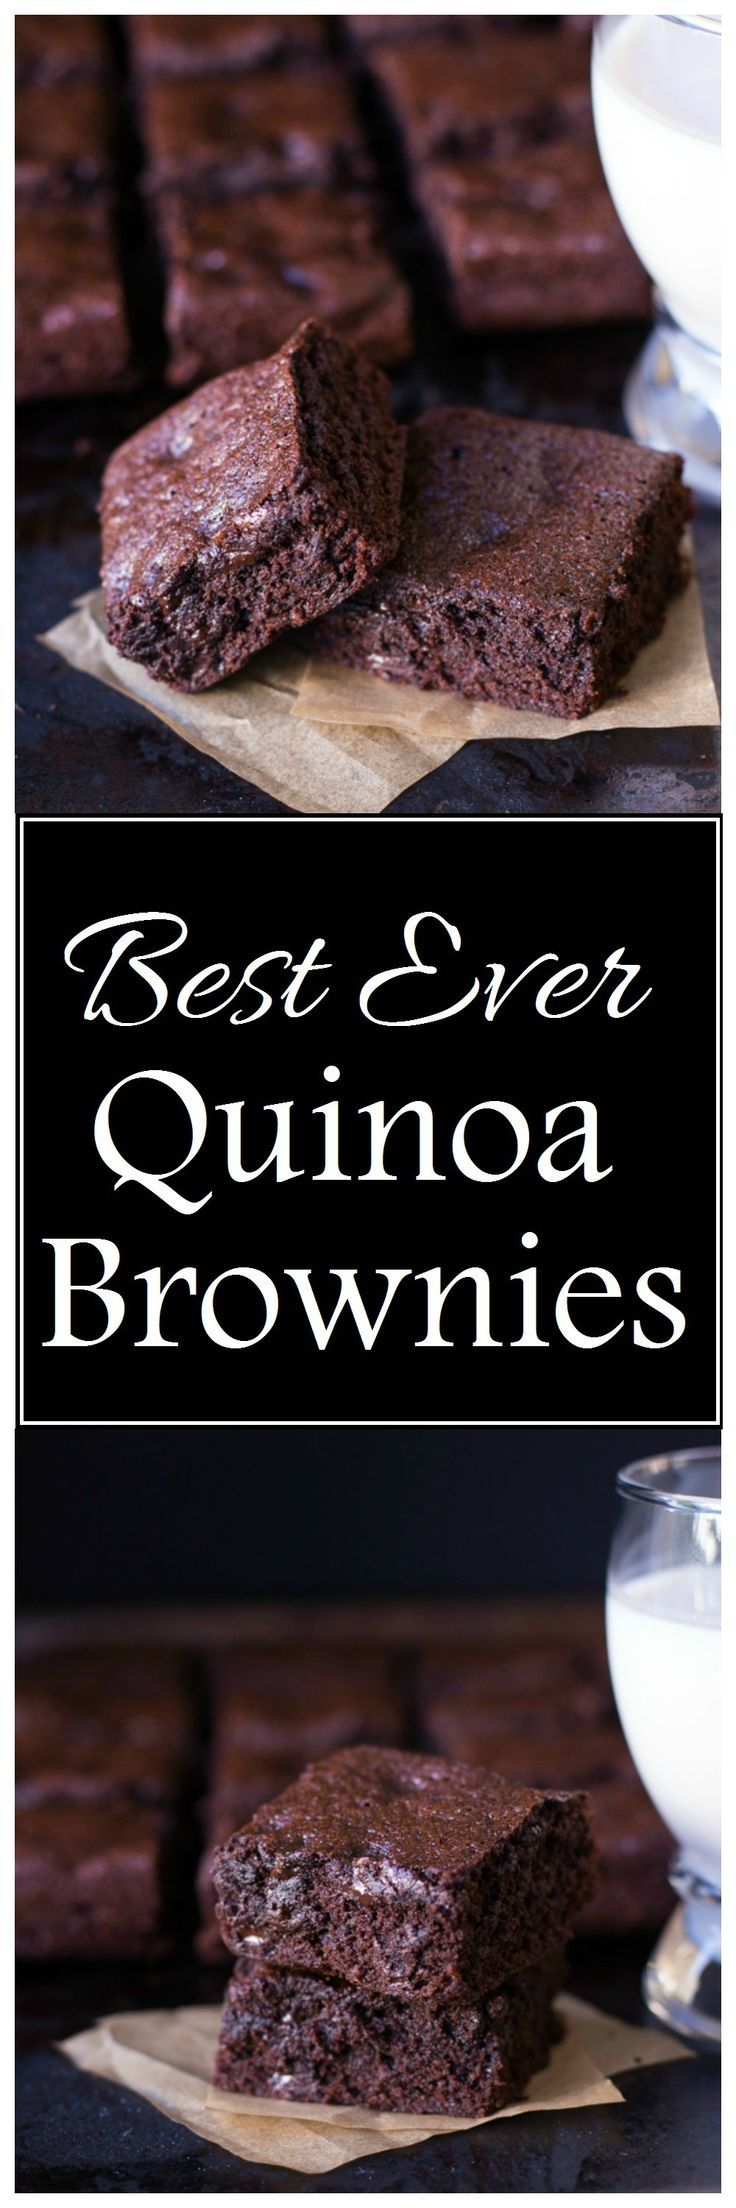 Best-Ever Quinoa Brownies- so perfect and delicious, you would never know they are gluten-free!